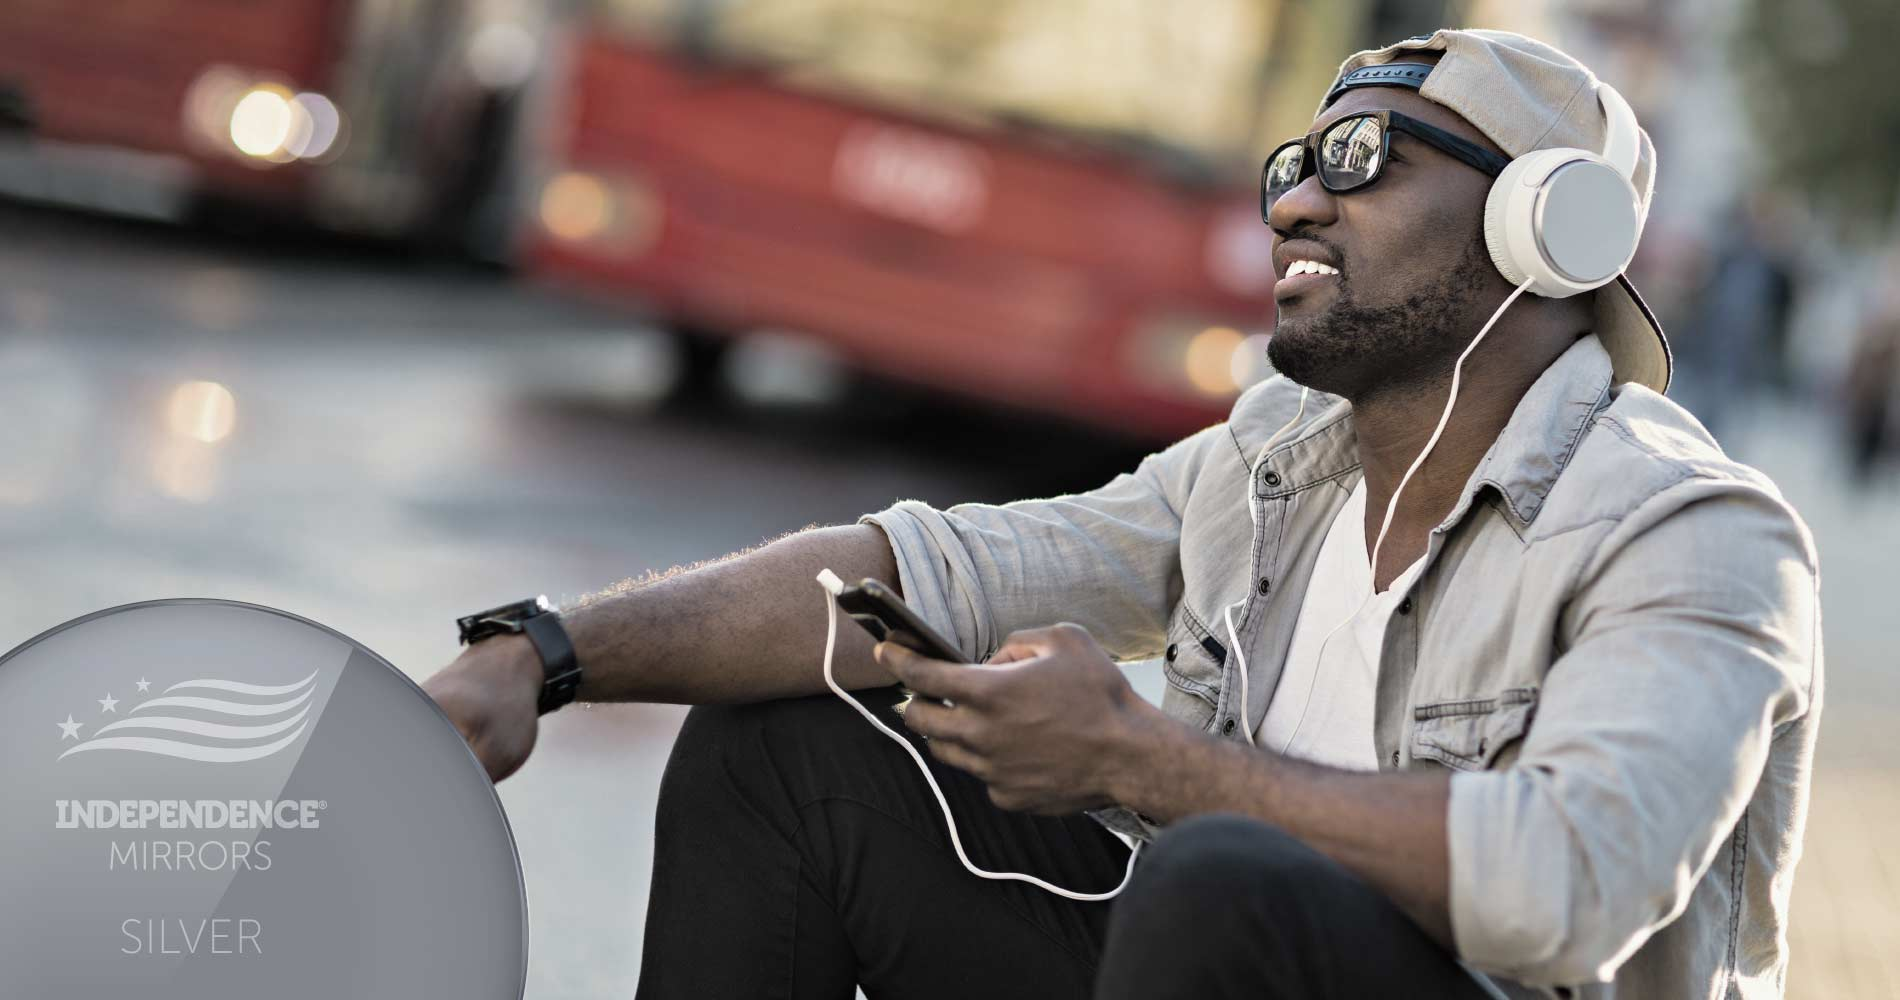 Man sitting on the curb listening to music with headphones, wearing silver-colored mirrored sunglasses